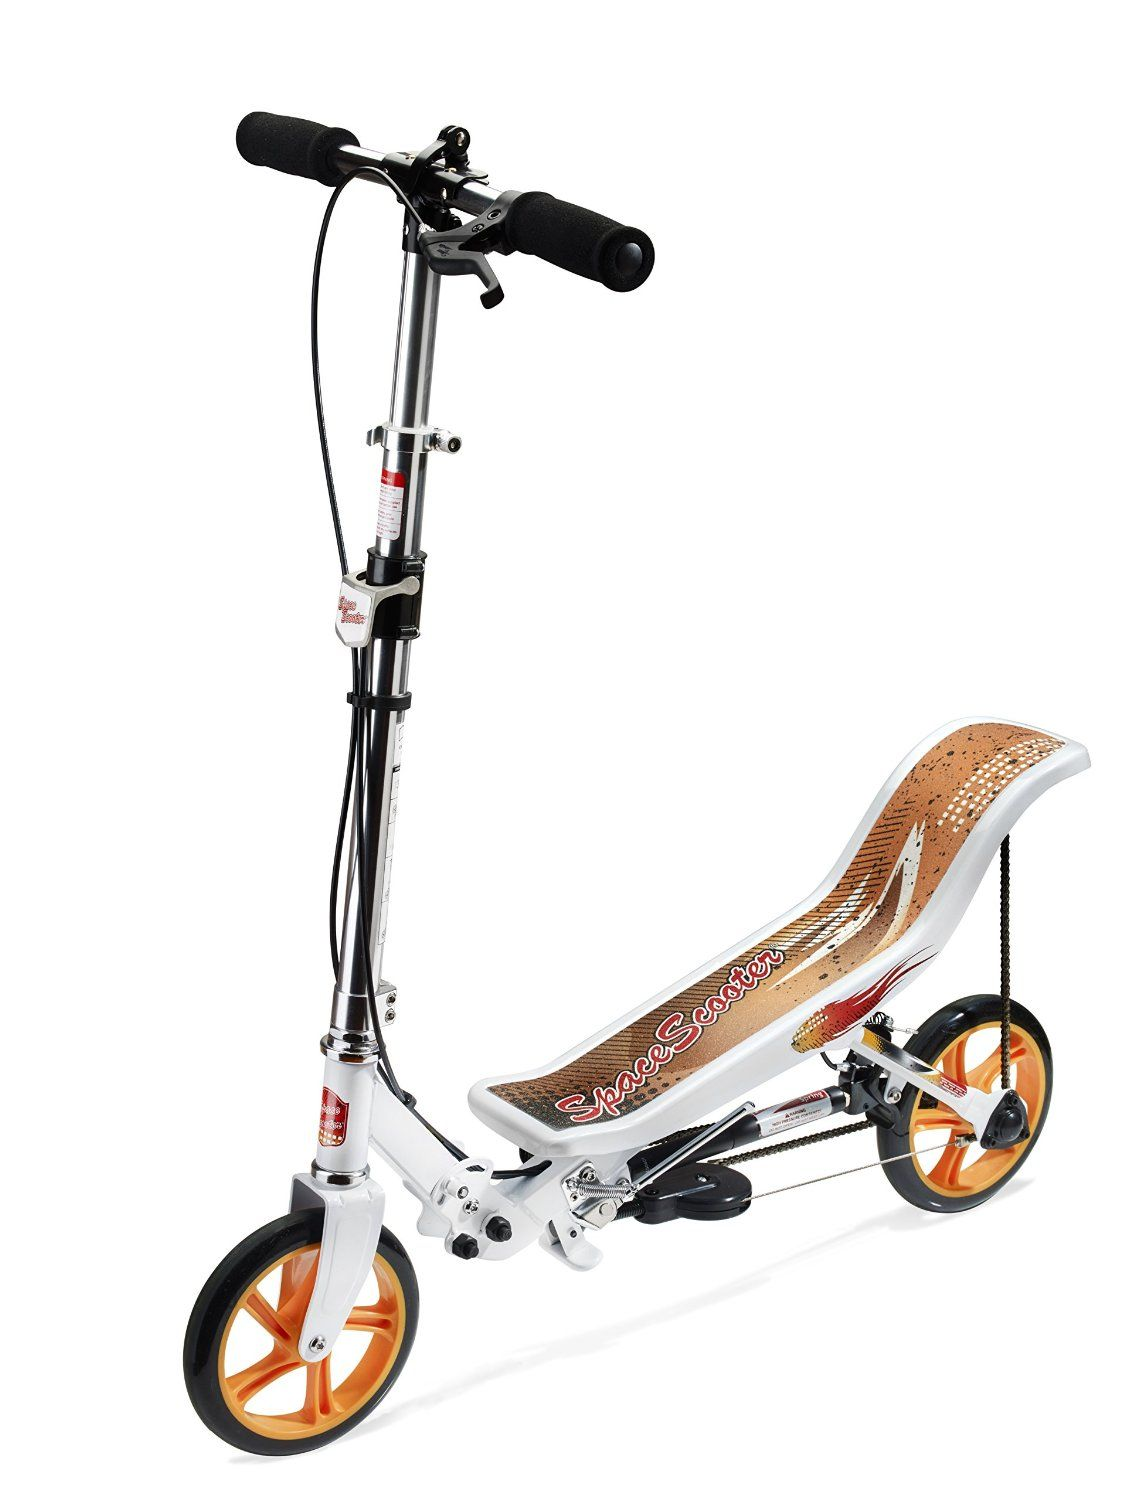 Scooter electric scooter scooty scooters for sale scooters for kids motor scooter electric scooter for kids adult scooter best scooter in india honda scooty